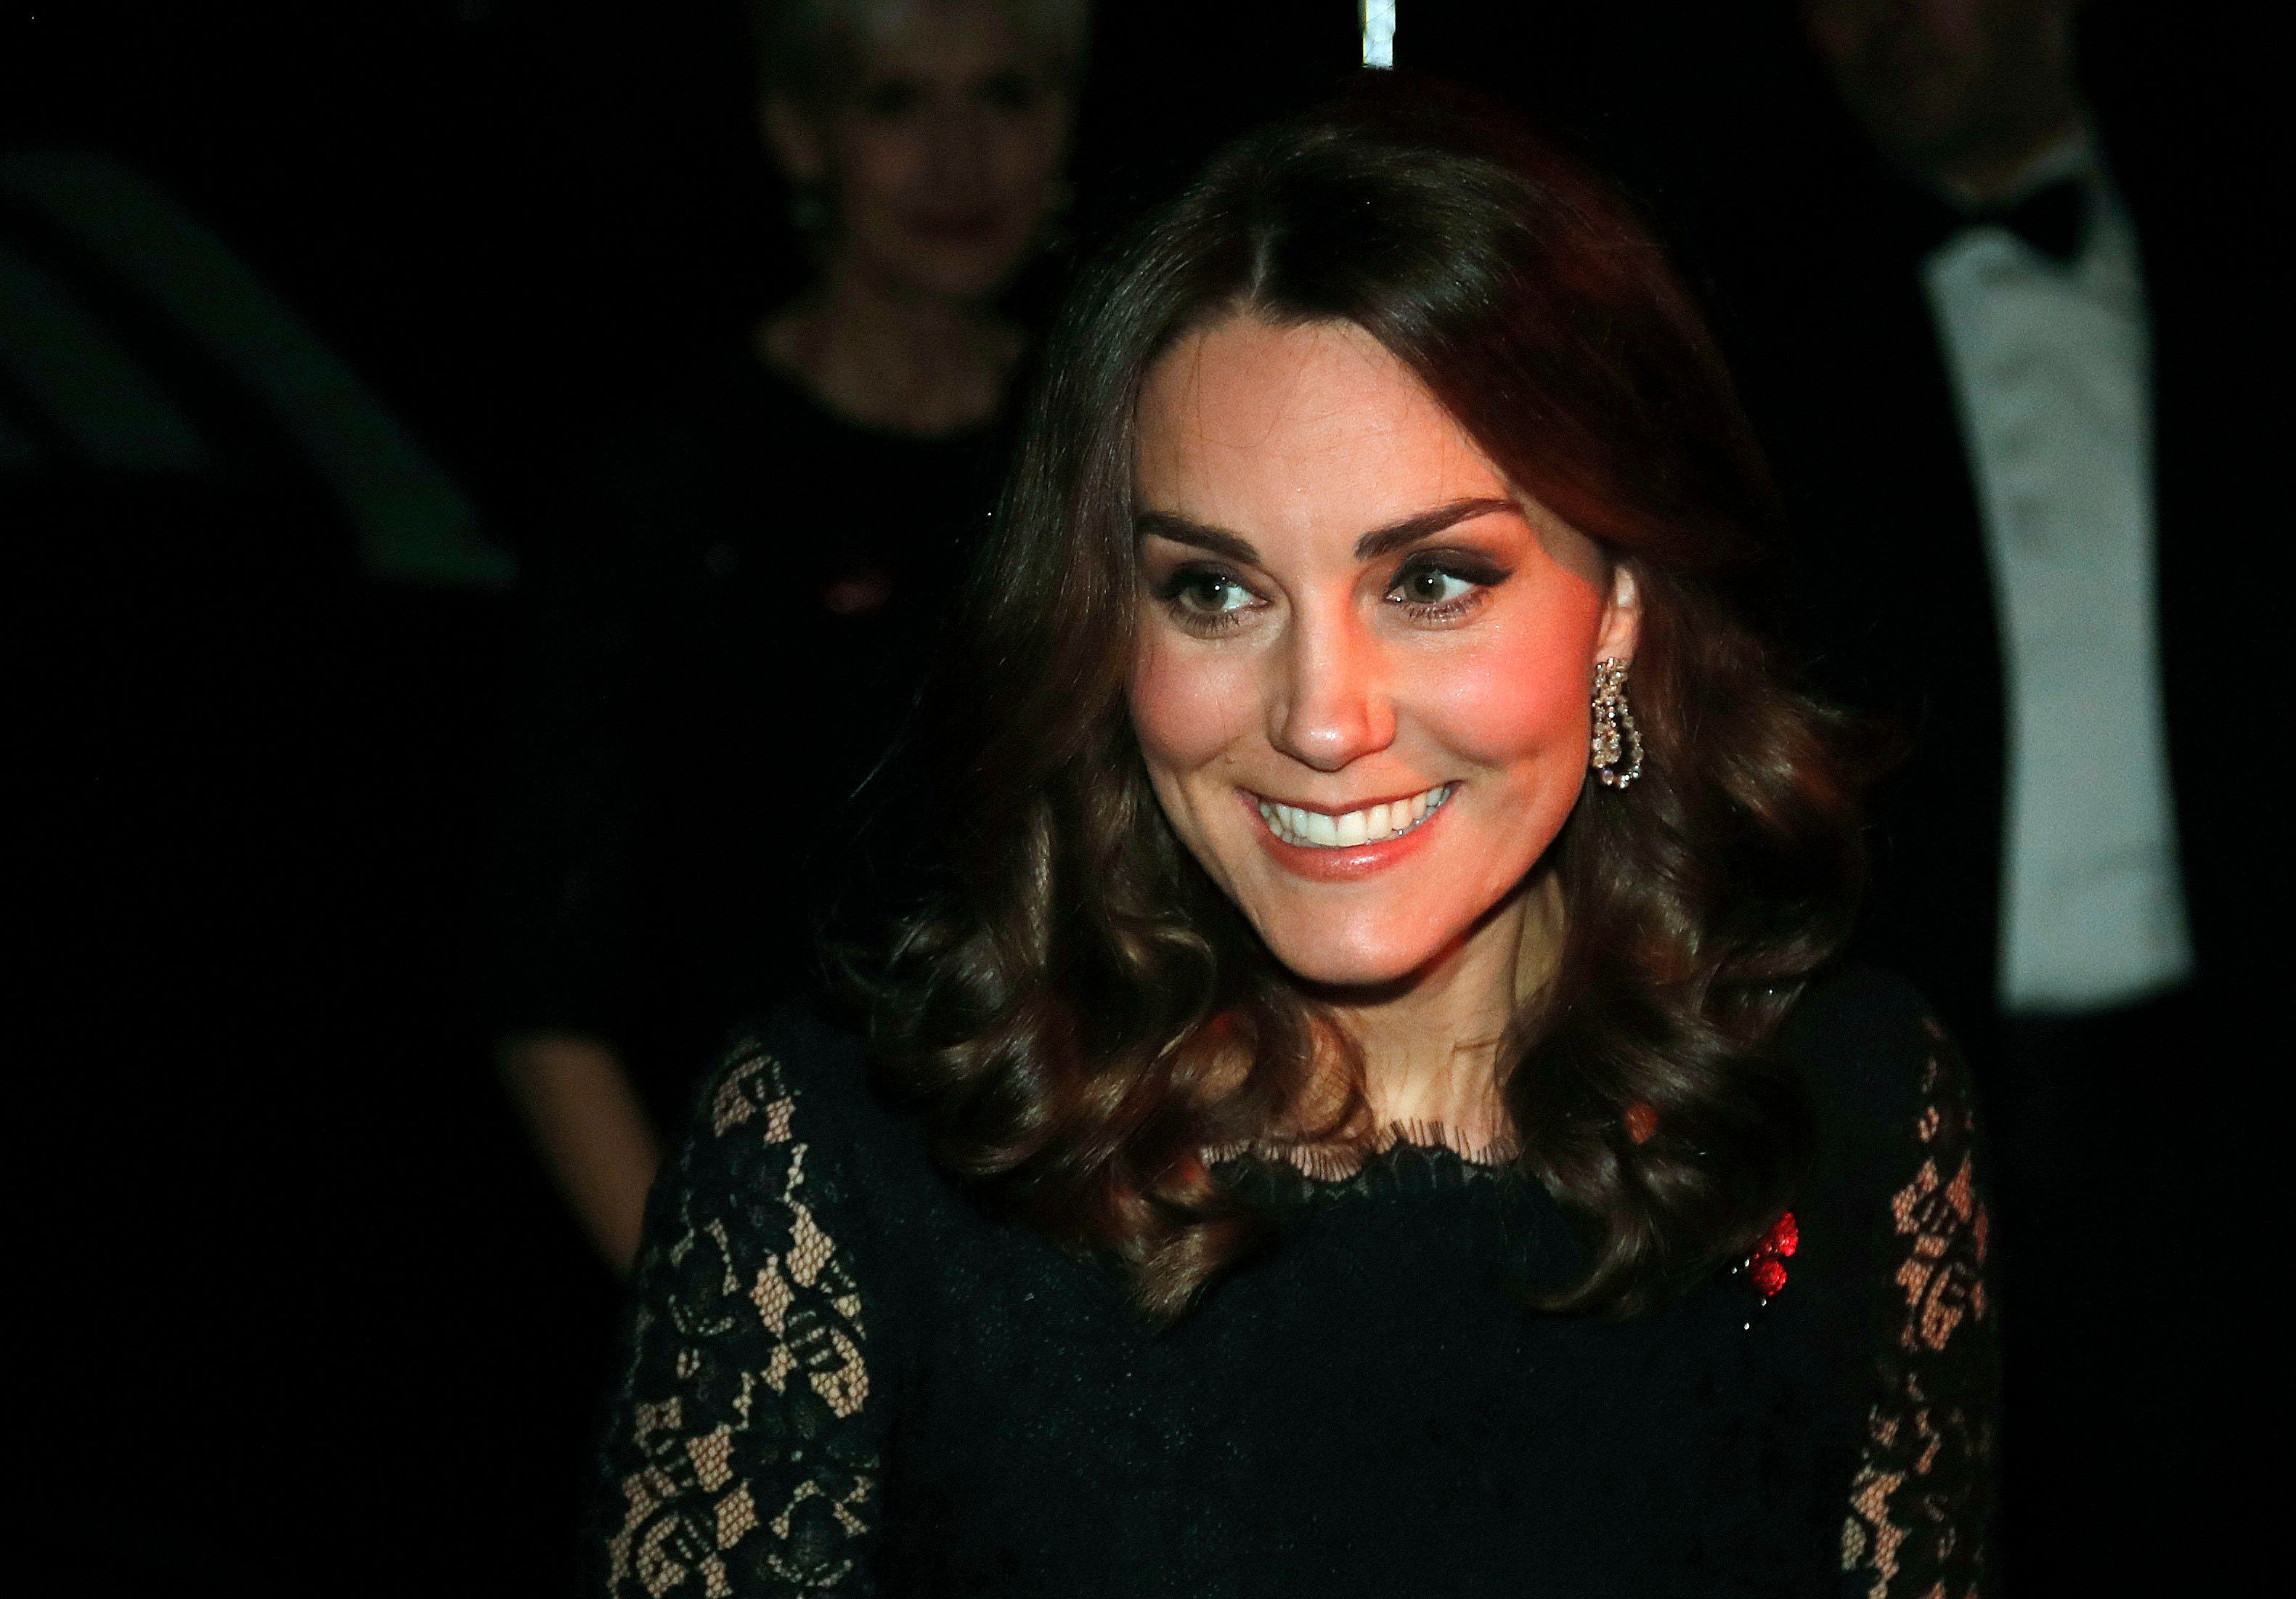 Duchess Of Cambridge Discusses Children's Mental Health At Charity